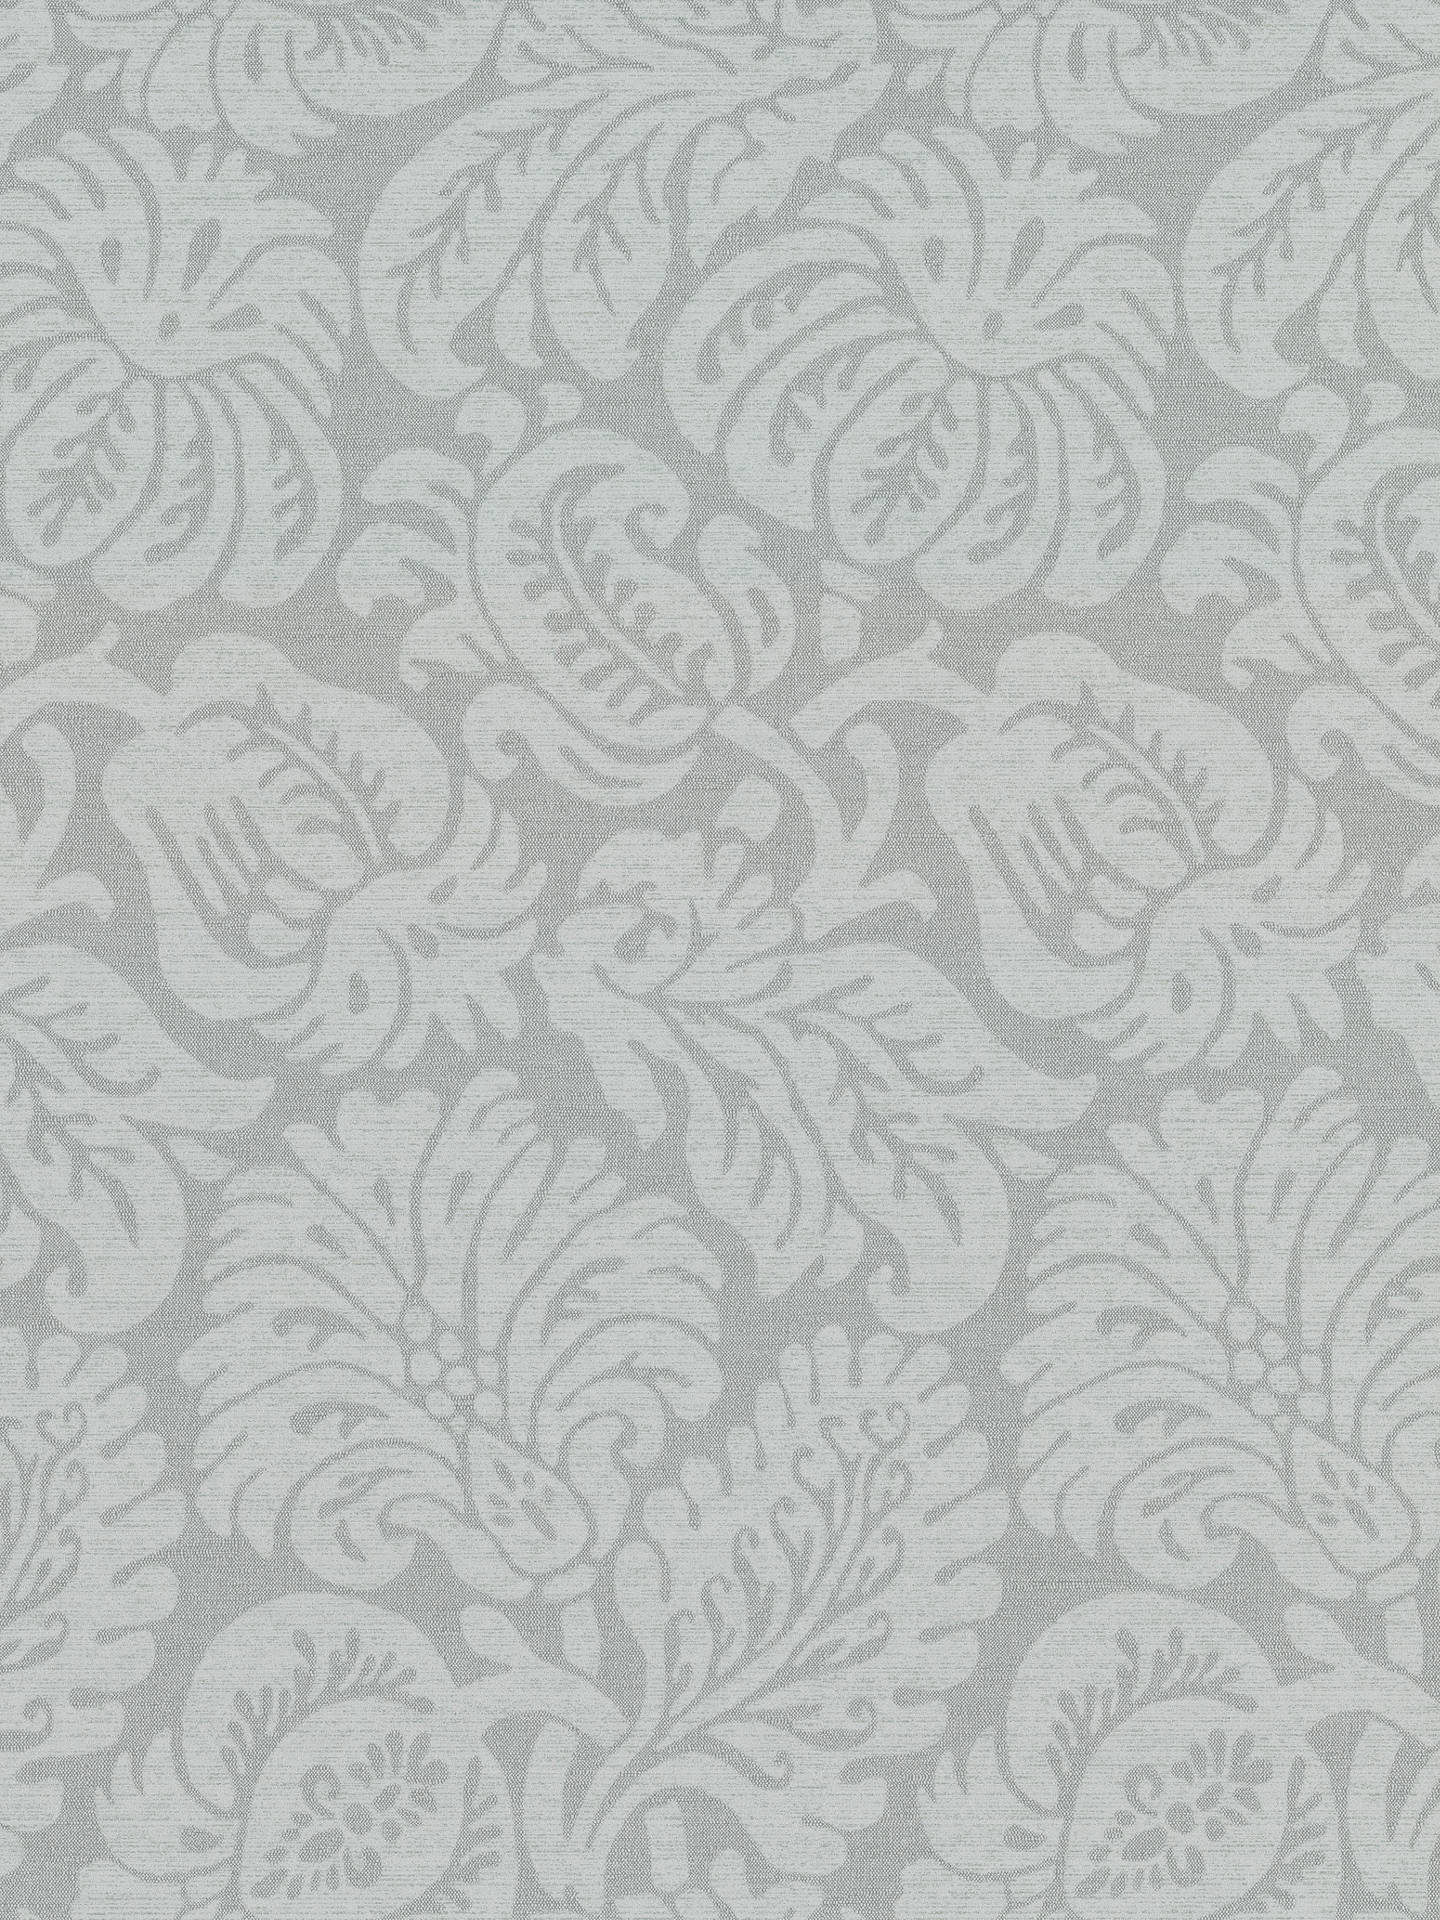 Buy The Little Greene Paint Company Palace Rd. Wallpaper, 0251PRSEVER Online at johnlewis.com